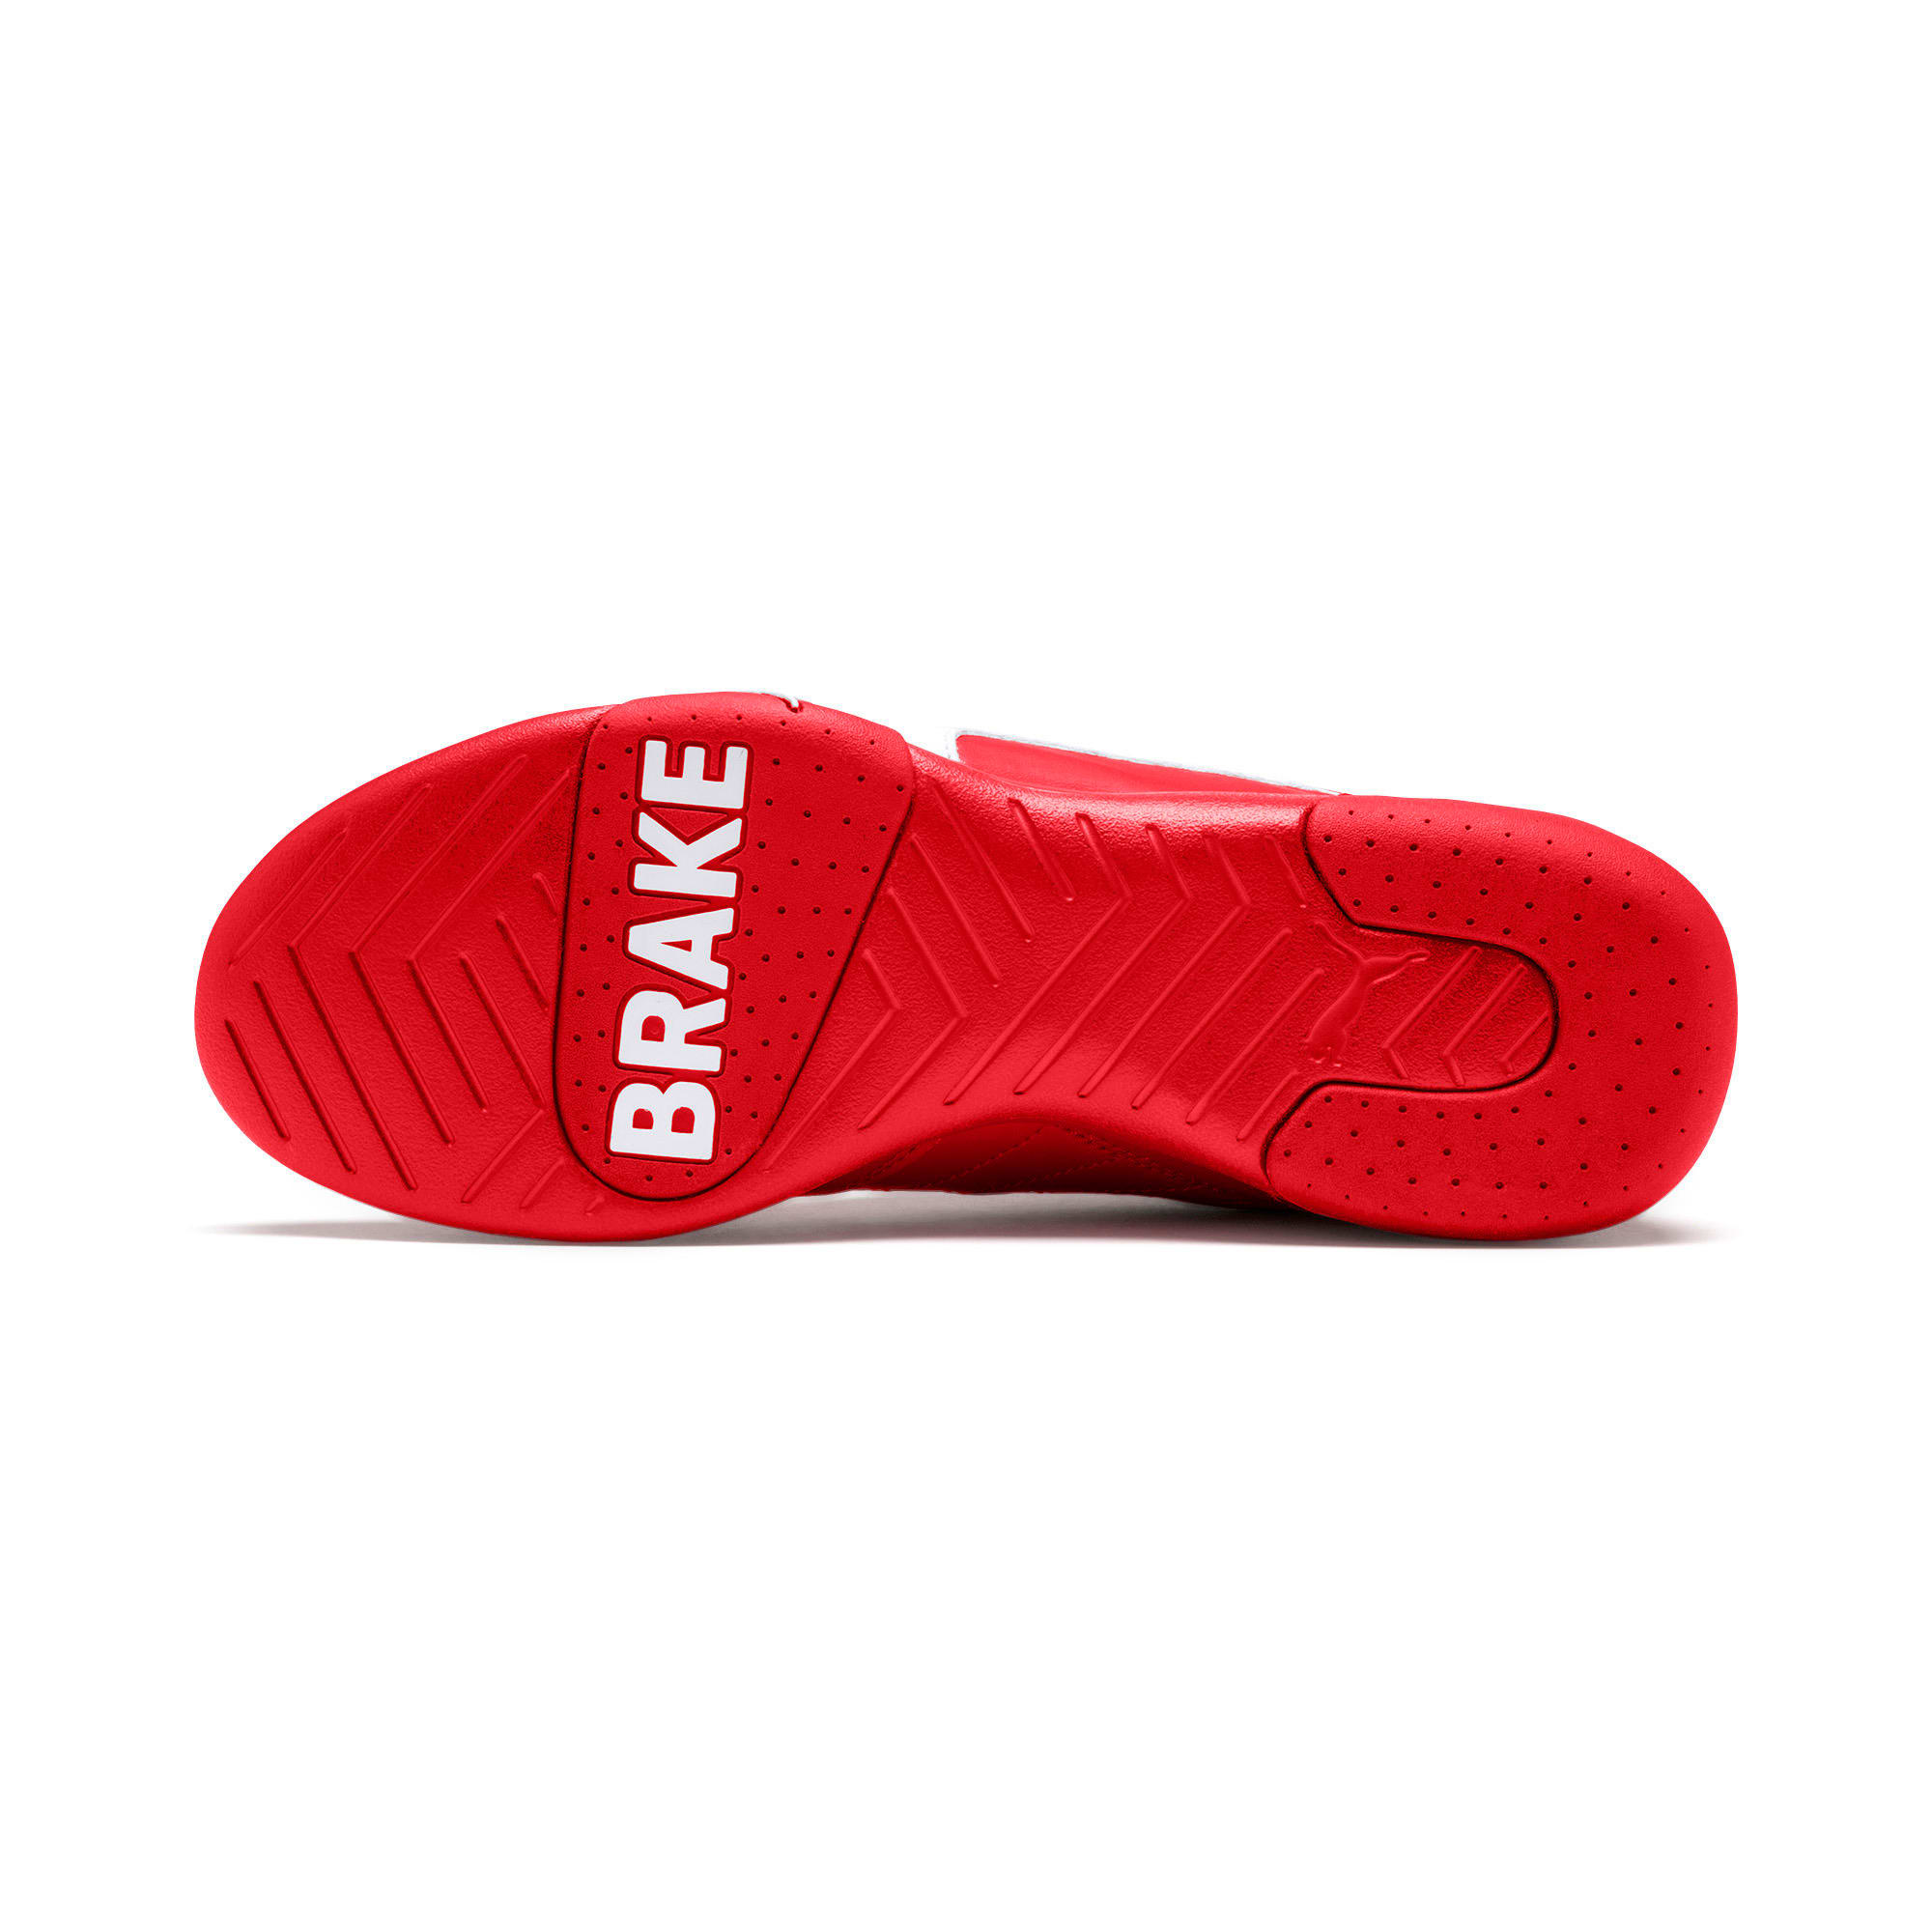 Thumbnail 4 of Ferrari Kart Cat III Youth Trainers, Rosso Corsa-Wht-Rosso Corsa, medium-IND